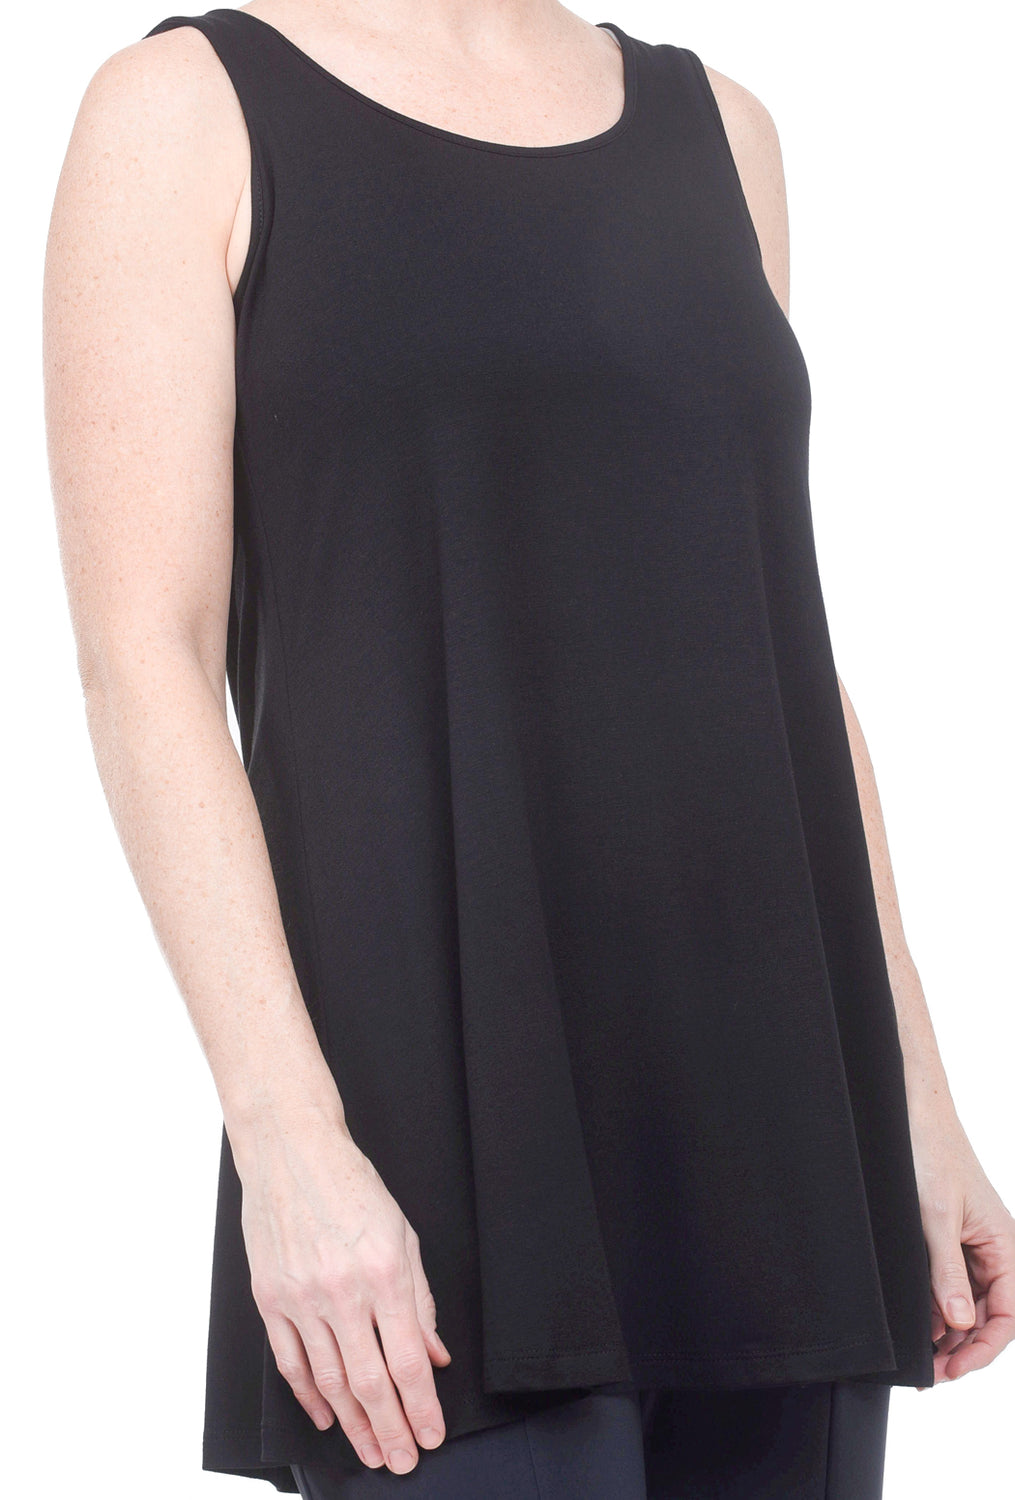 Comfy USA Modal Full Long Tank, Black